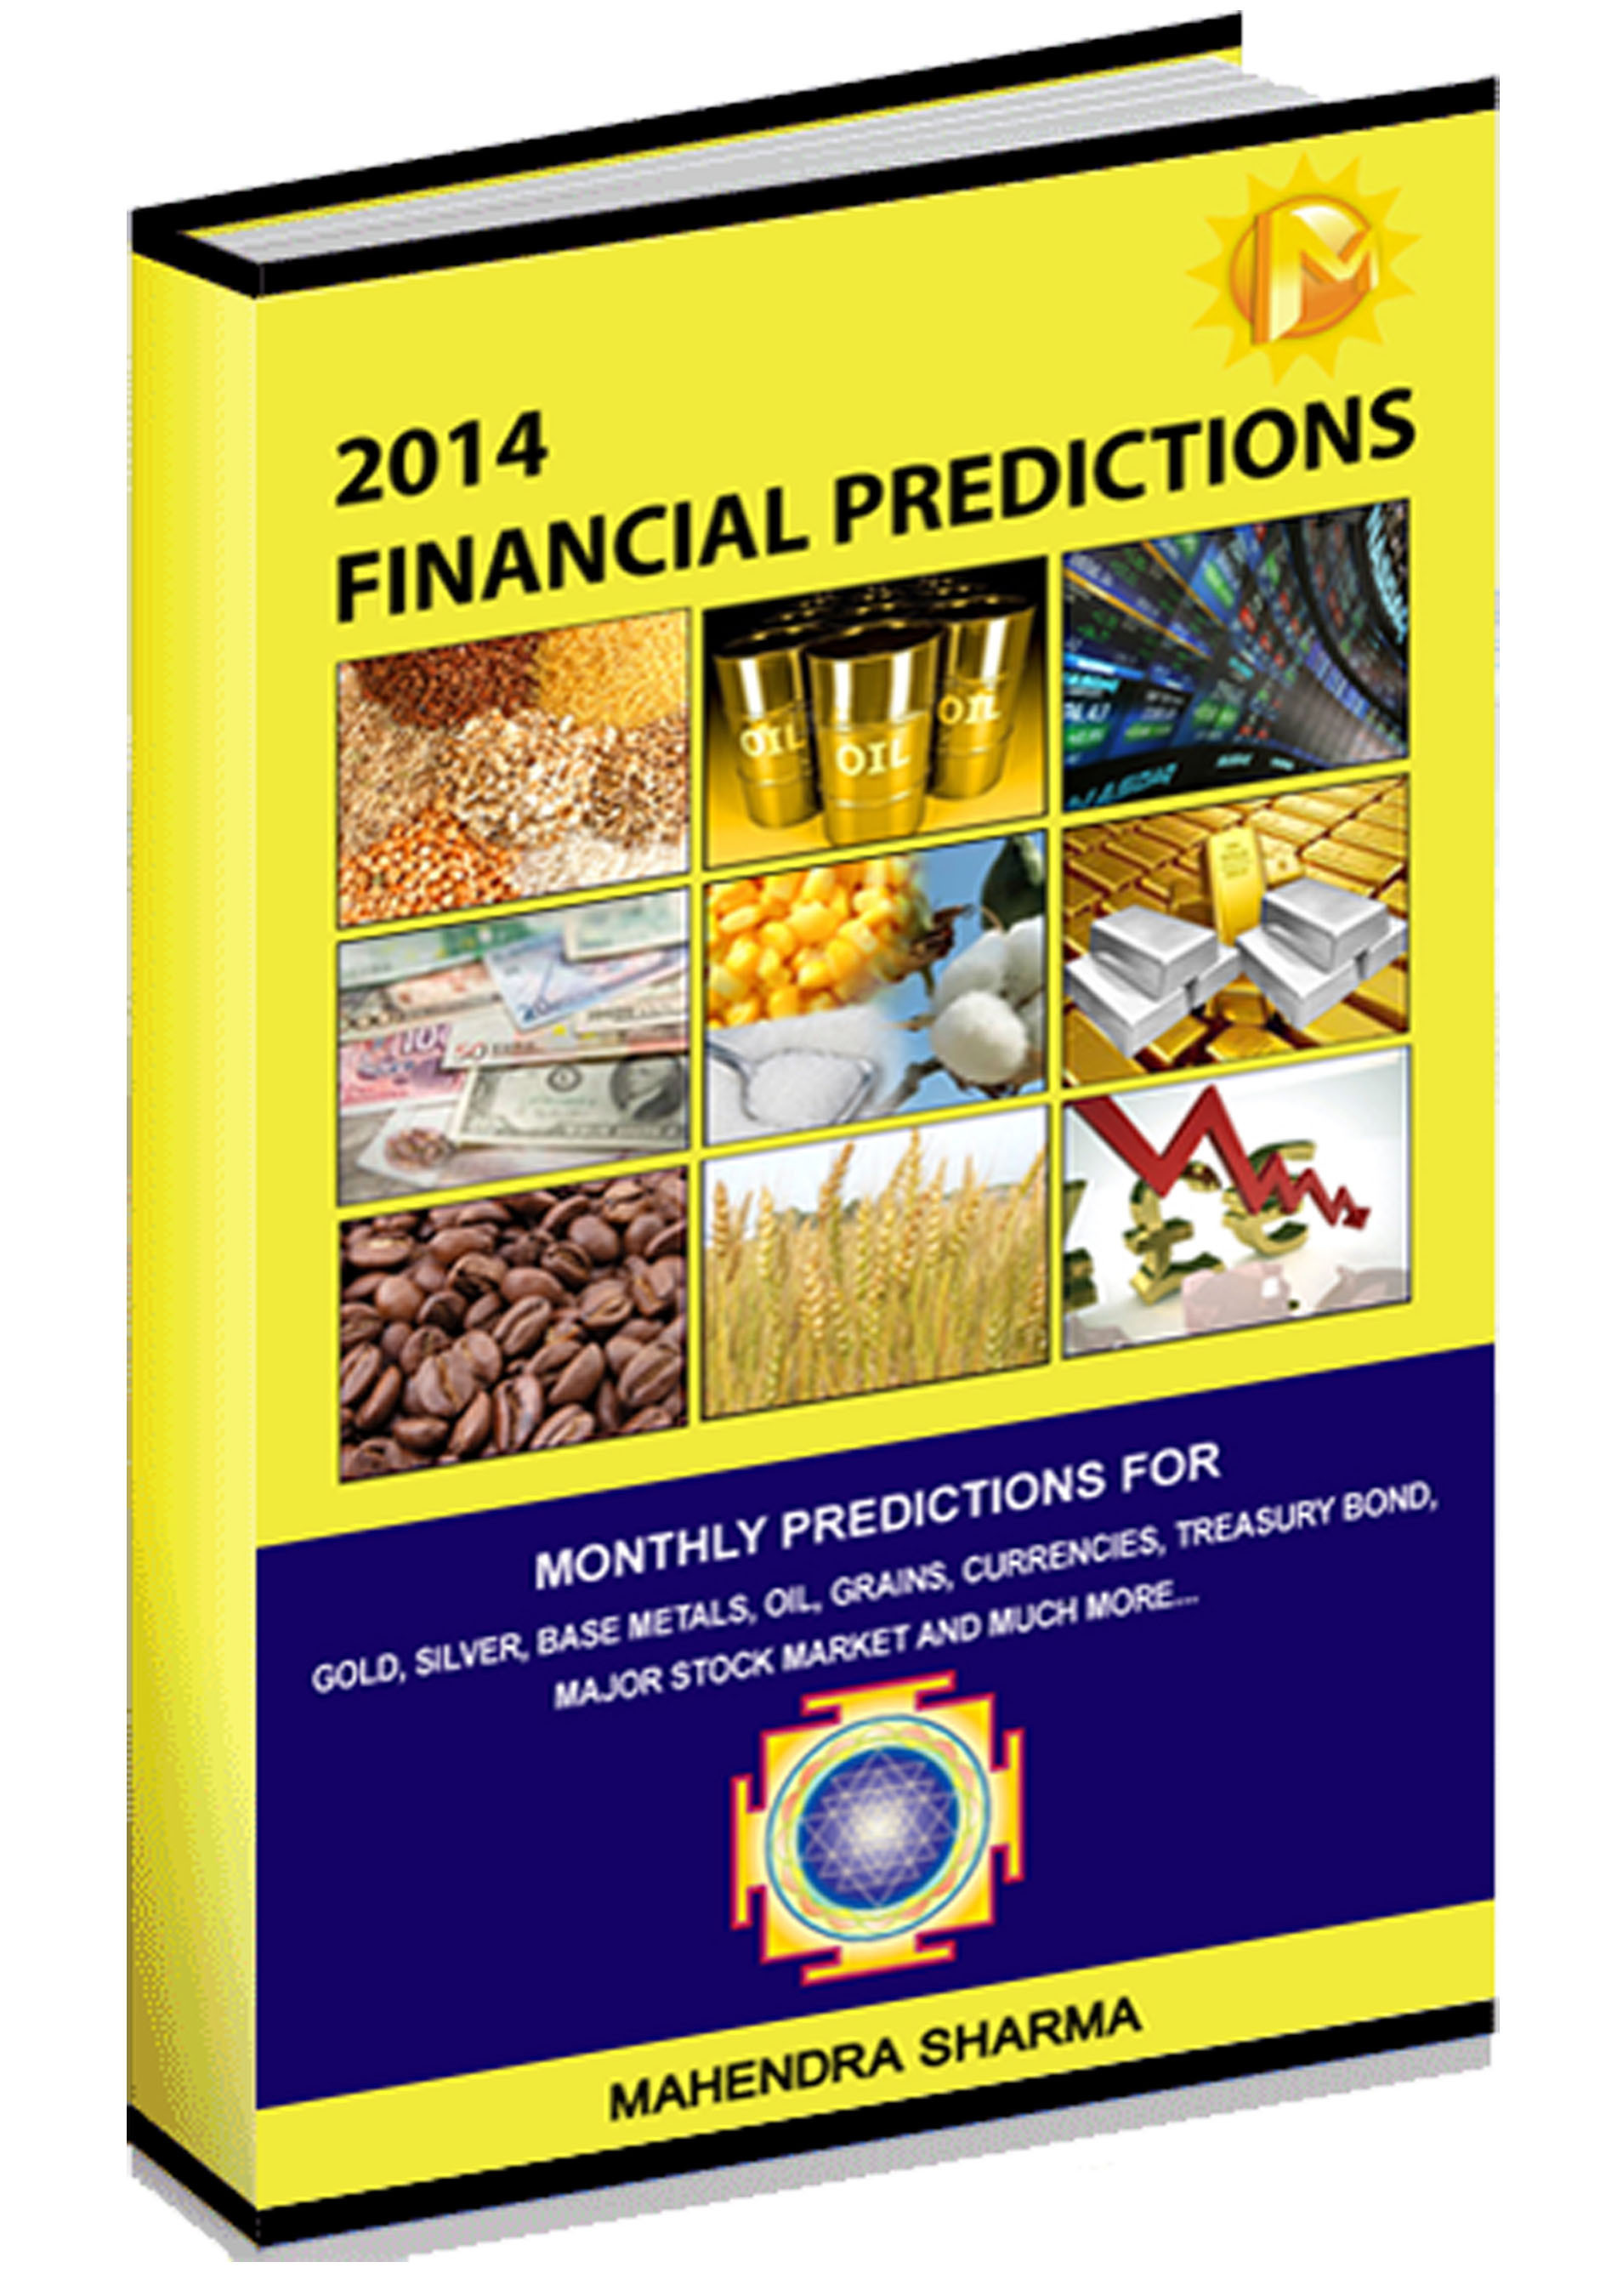 '2014 Financial Predictions' Book Is Released